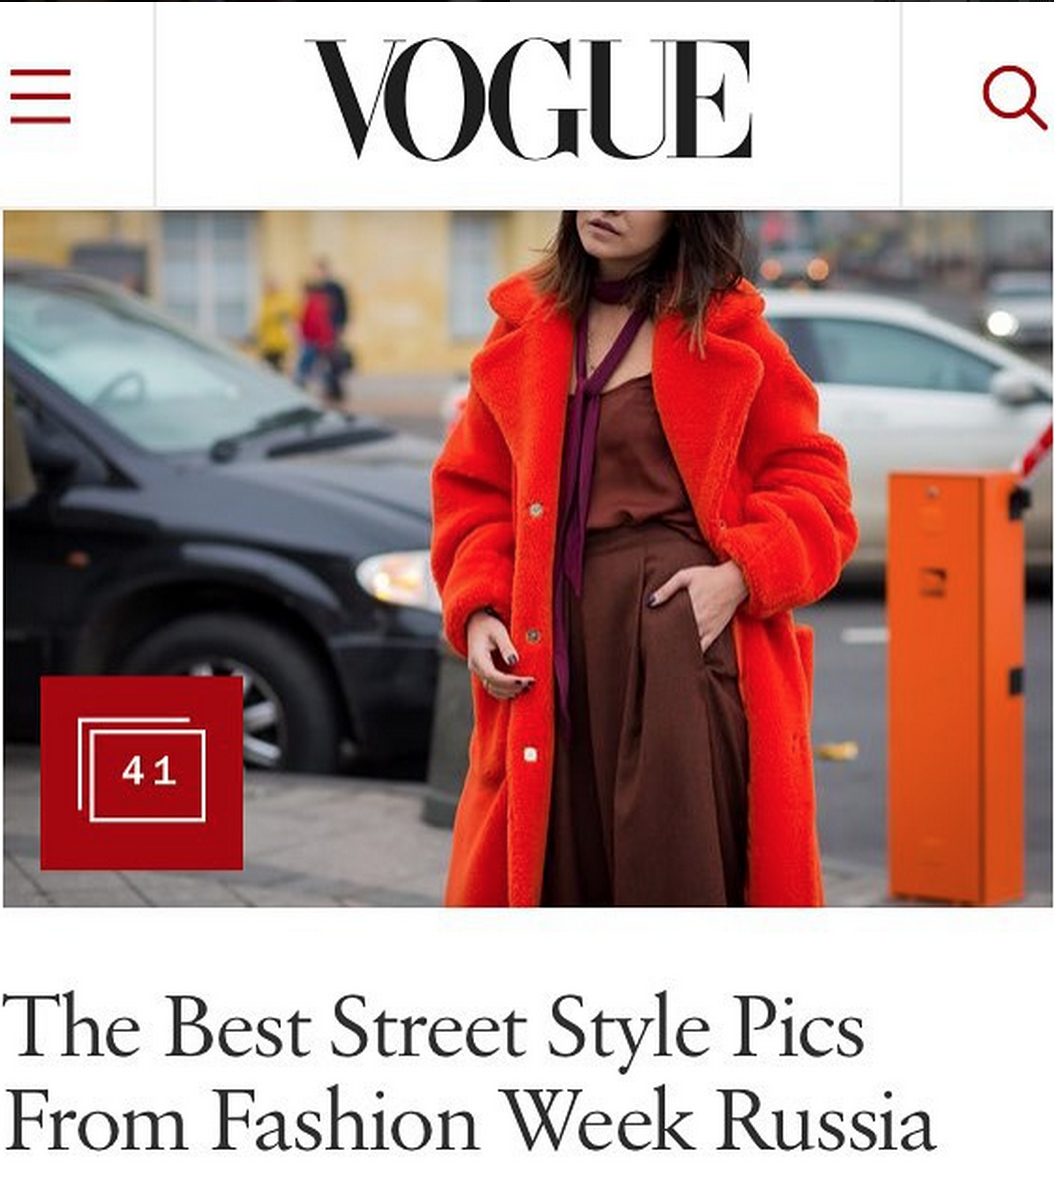 STYLEDUMONDE street style of Mercedes Benz Fashion Week Russia on VogueCom Vogue US